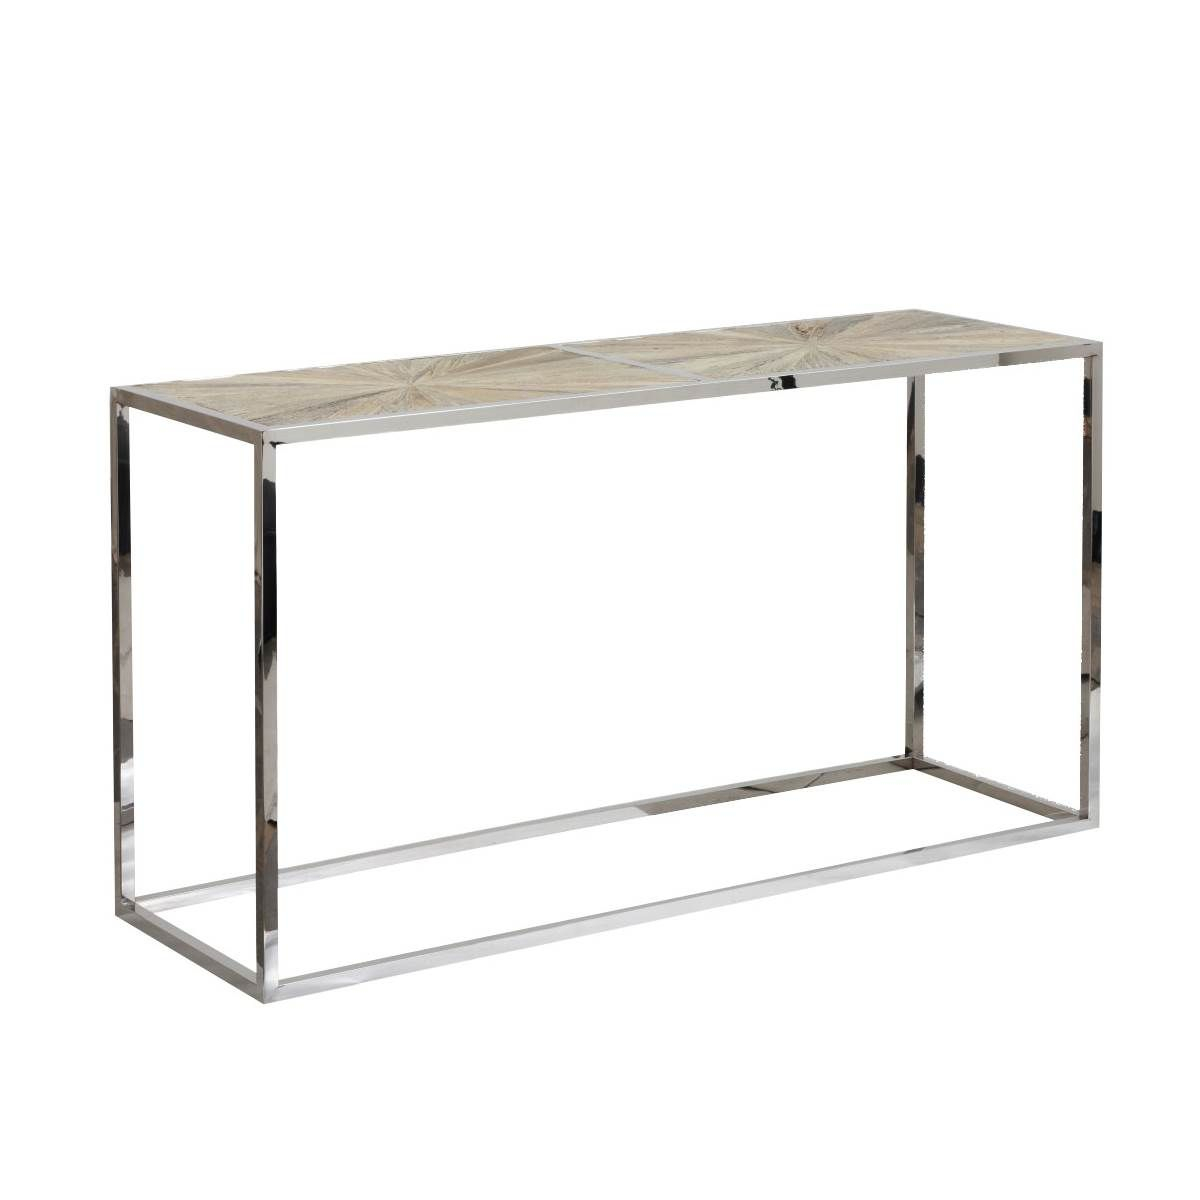 Parquet Console Table | Marshall | Pinterest Pertaining To Parsons Concrete Top & Dark Steel Base 48X16 Console Tables (Photo 25 of 30)